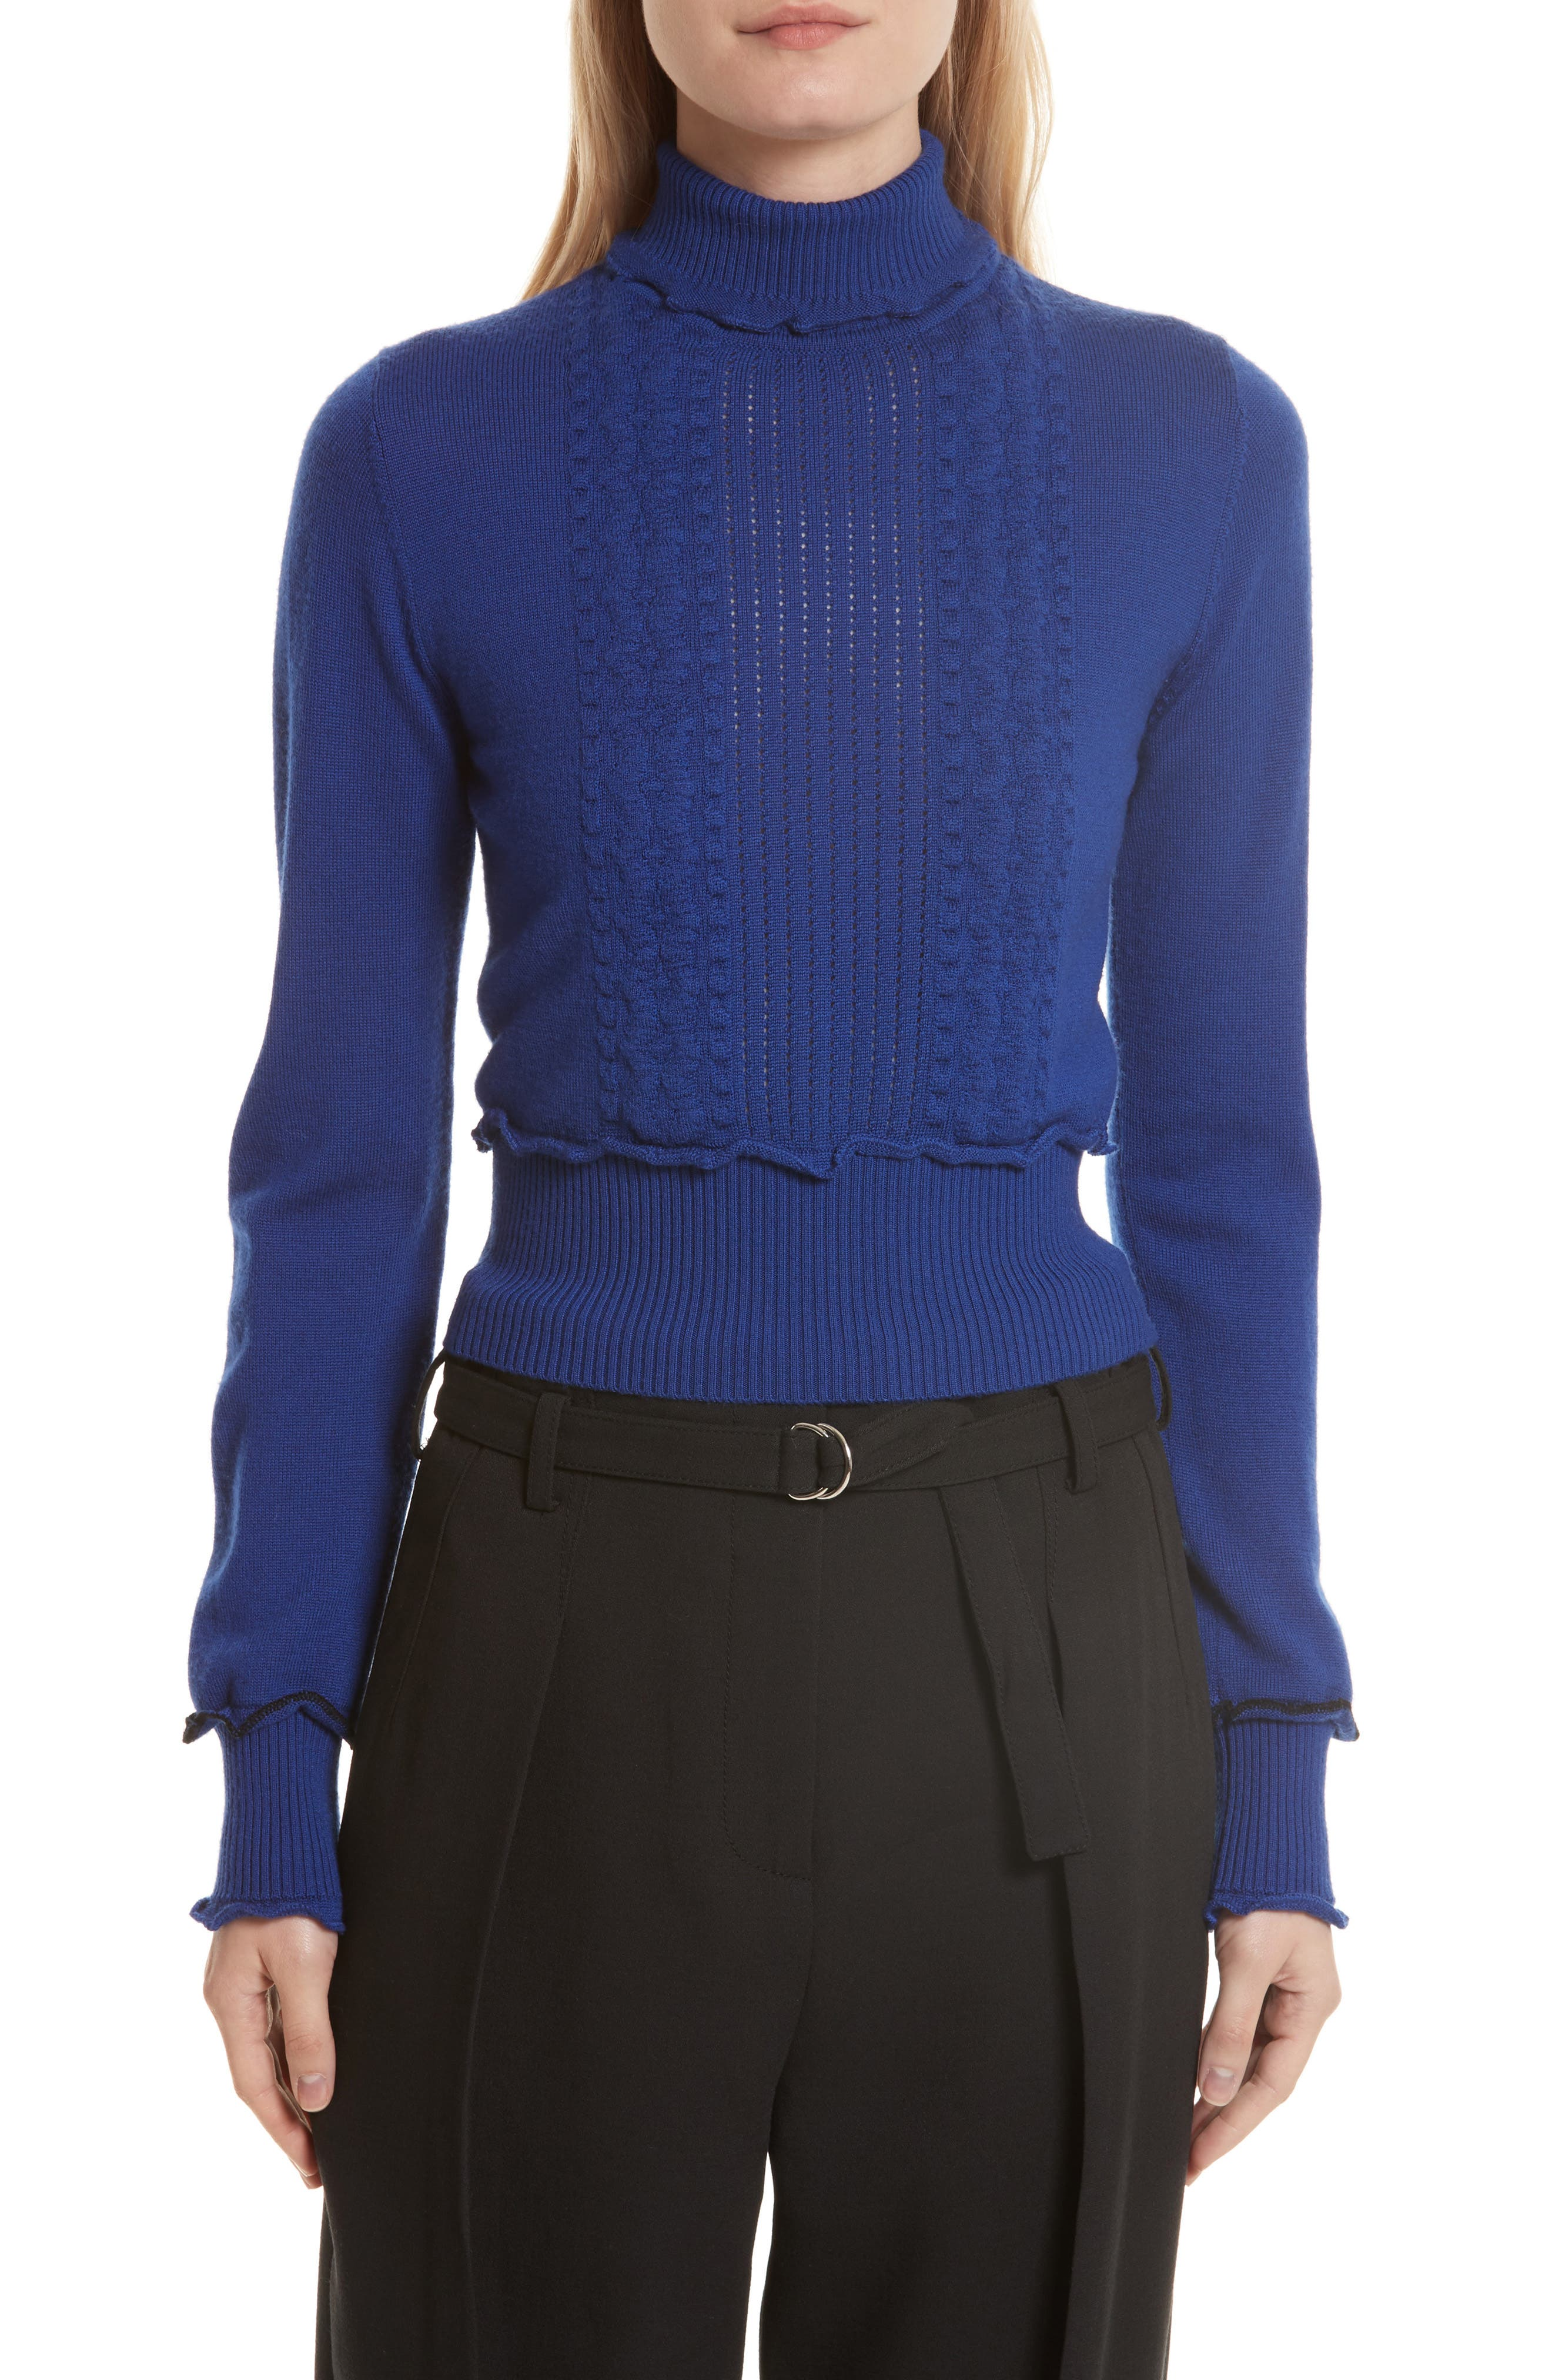 3.1 Phillip Lim Puffy Cable Turtleneck Sweater